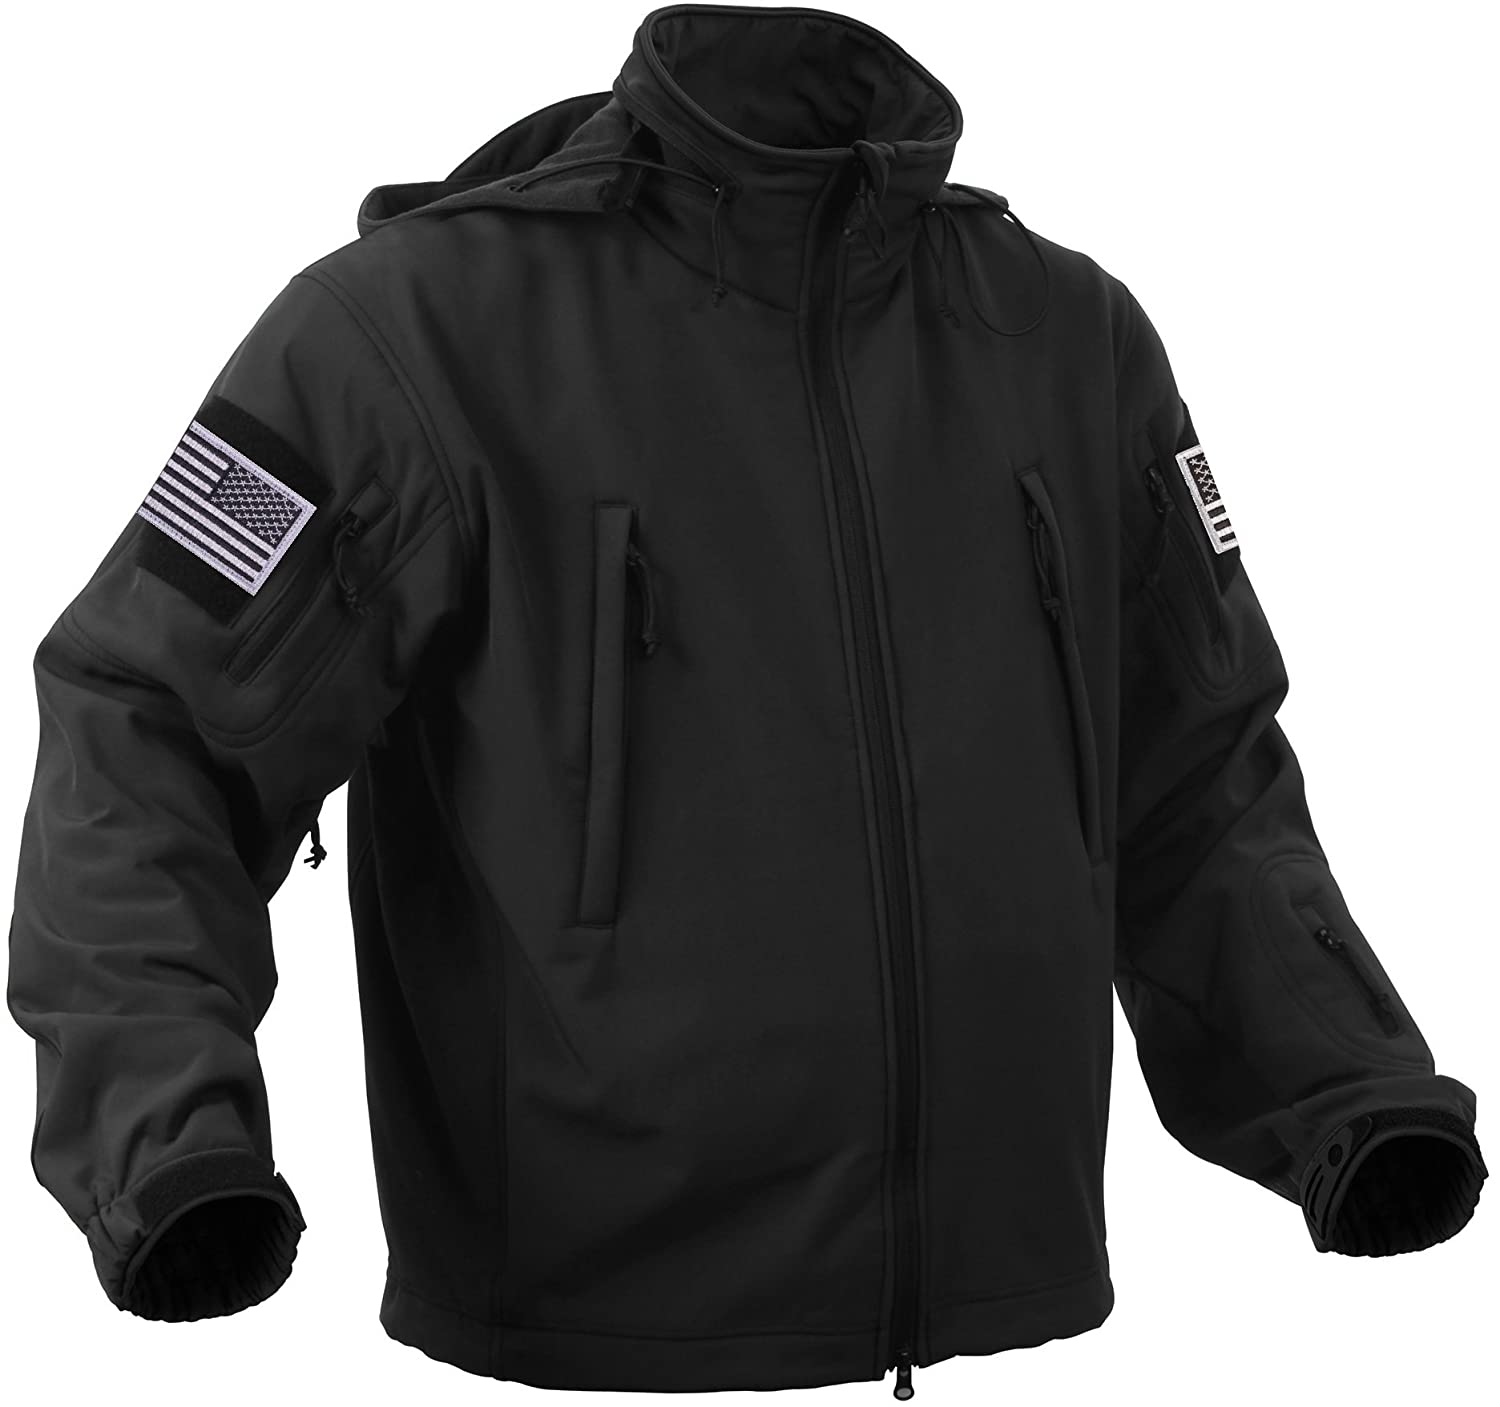 Amazoncom Rothco Special Ops Tactical Soft Shell Jacket With